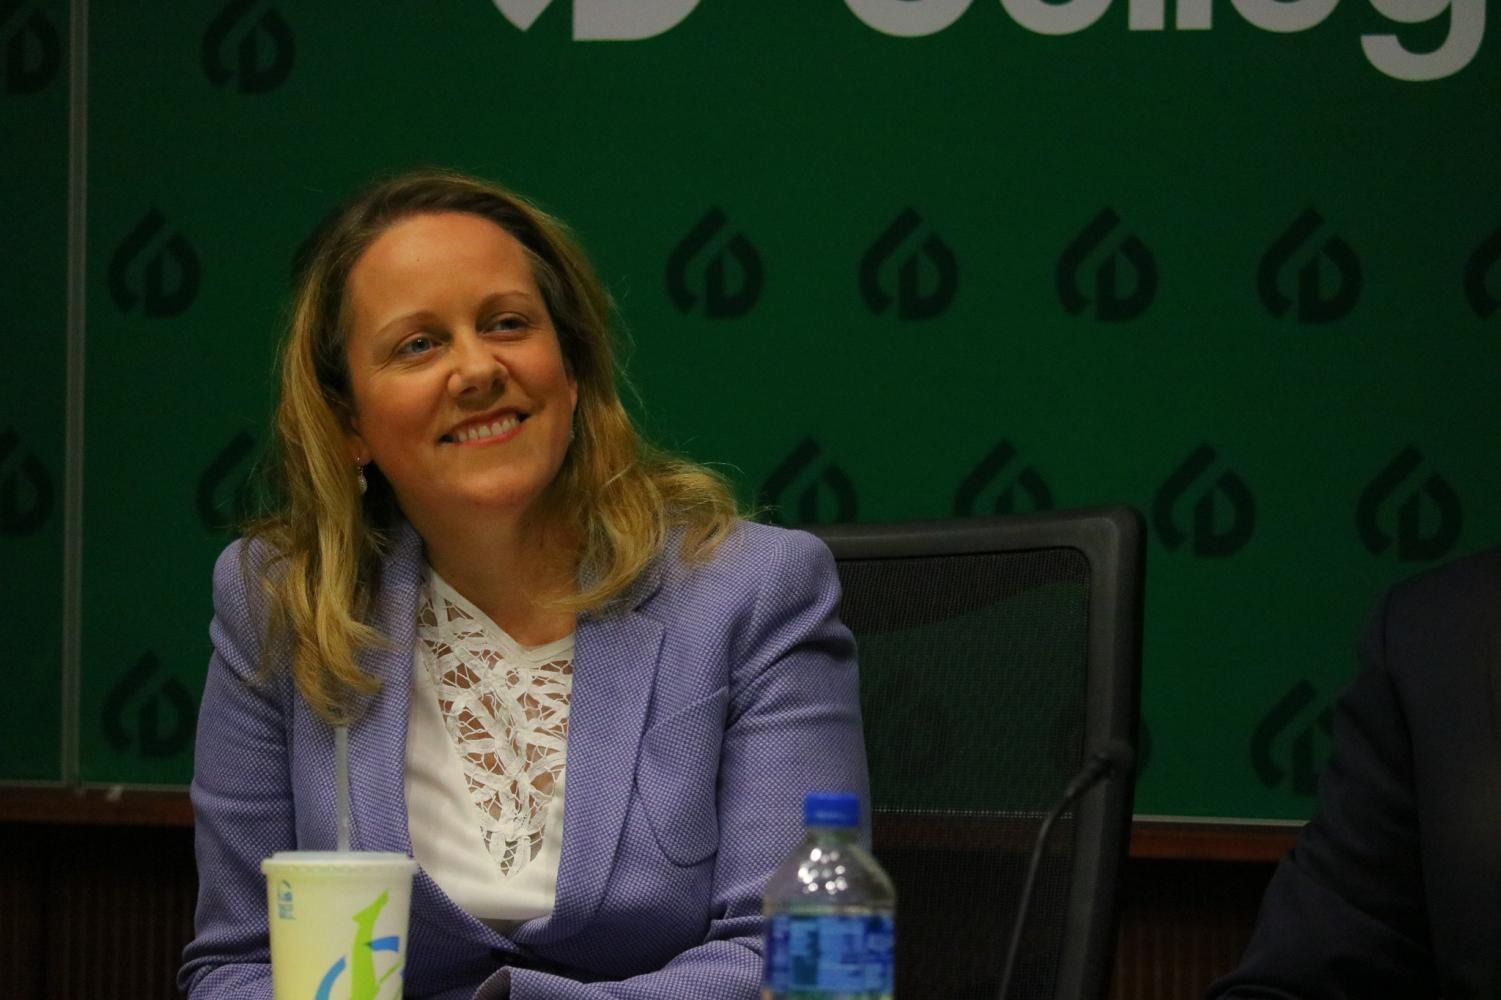 Did former Trustee Deanne Mazzochi's decision to hold off her resignation help smoothen the transition process, or did it increase polarization amongst the COD Board?